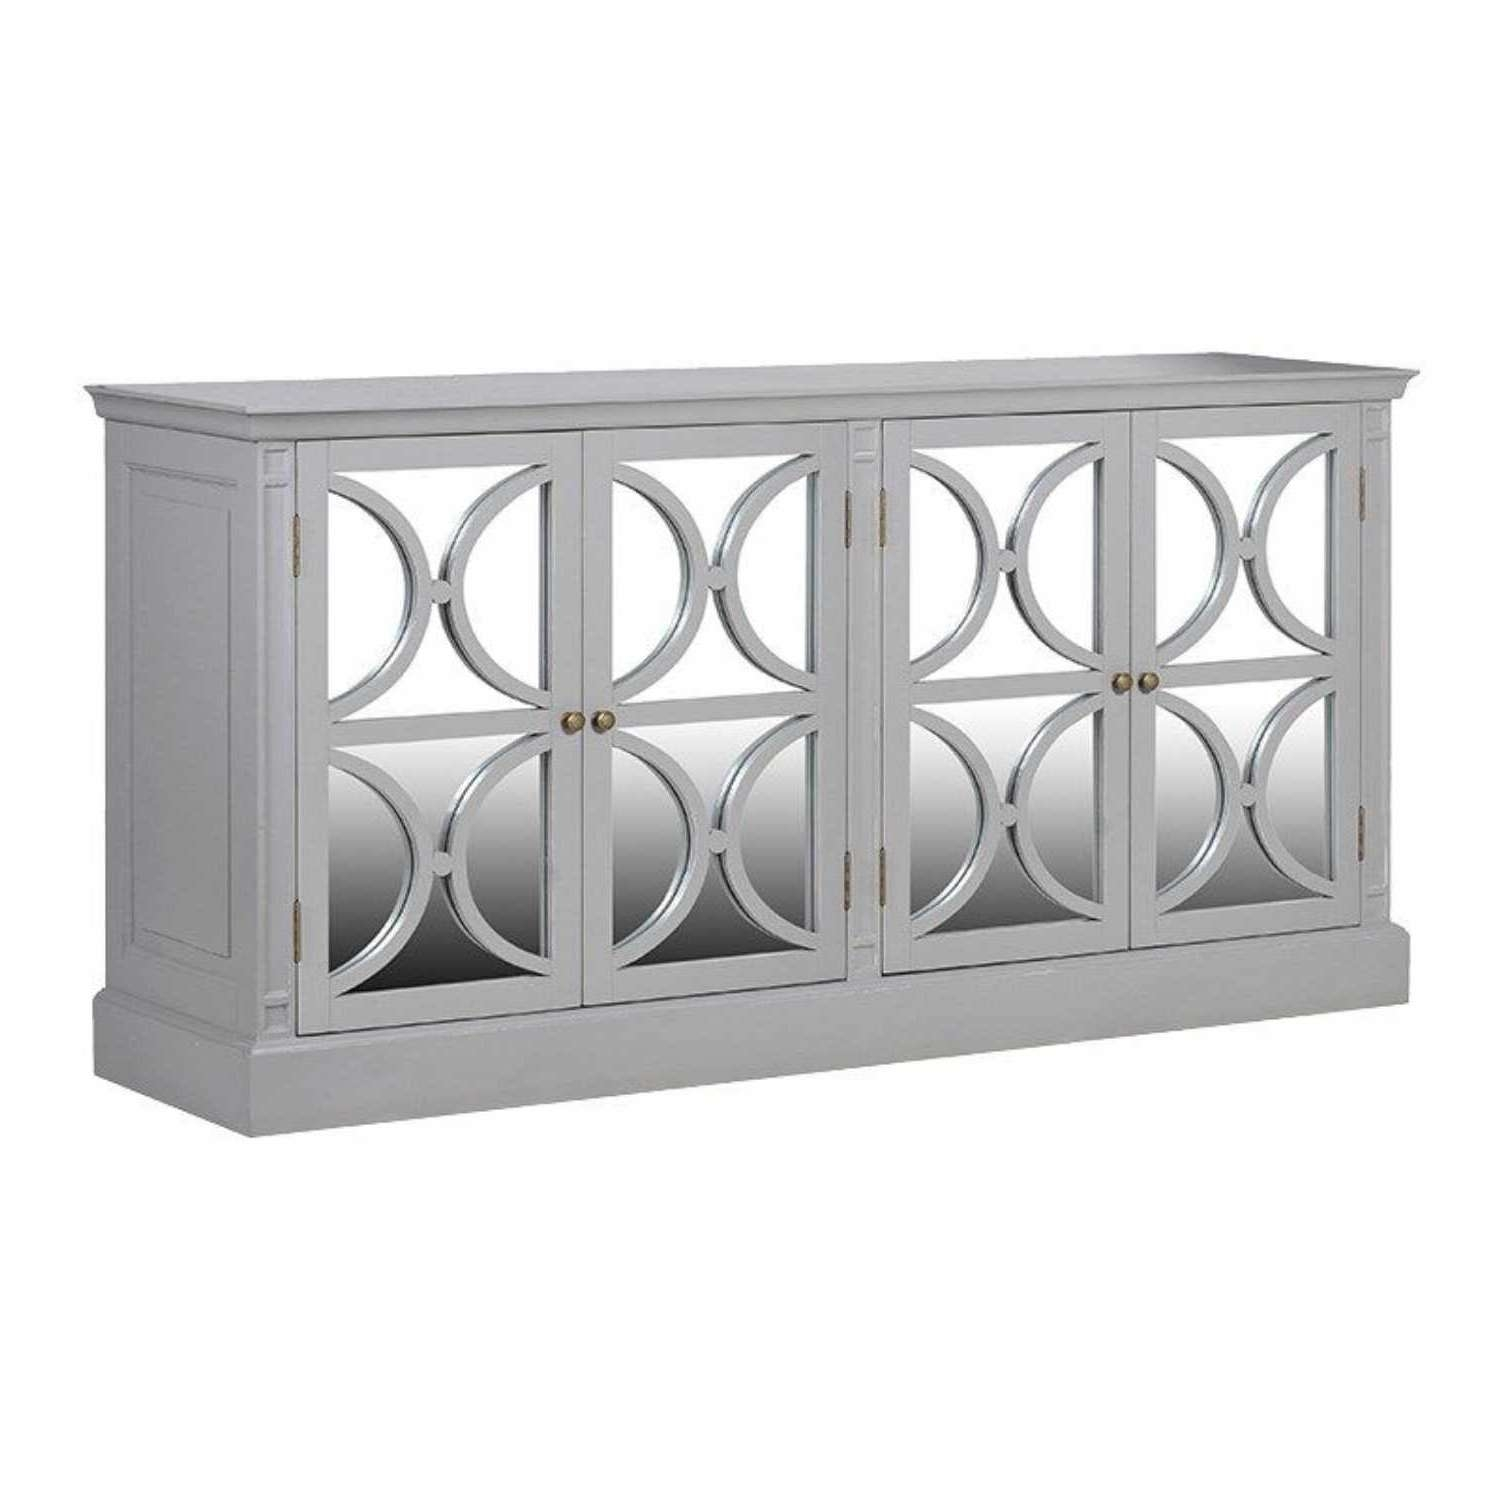 Modern Grey Fayence 4 Door Decorative Mirrored Sideboard With White Mirrored Sideboards (View 7 of 20)